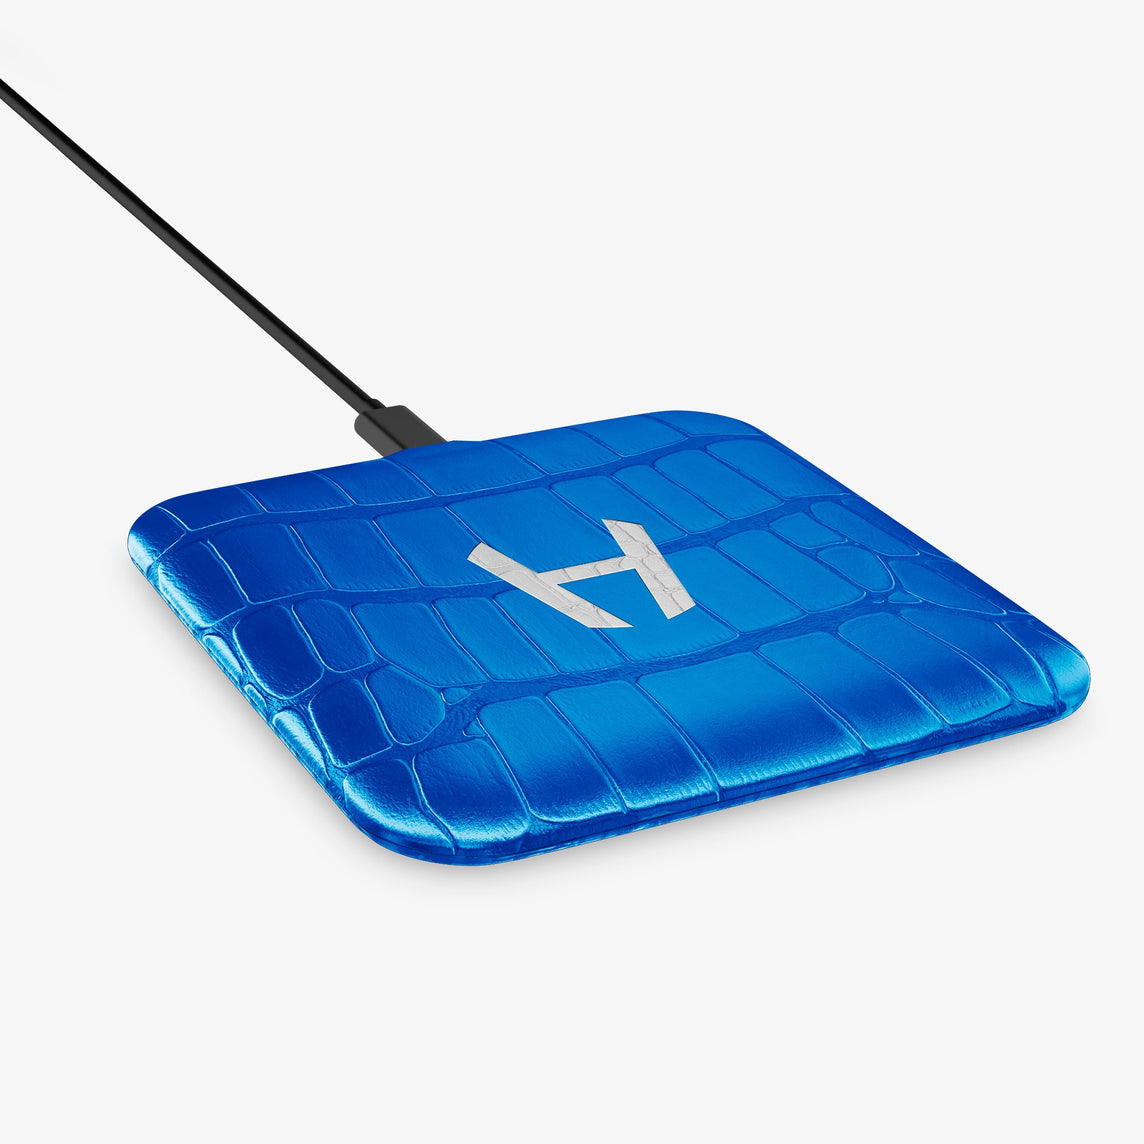 Alligator Hadoro Wireless Charging Pad | Peony Blue - Stainless Steel without-personalization